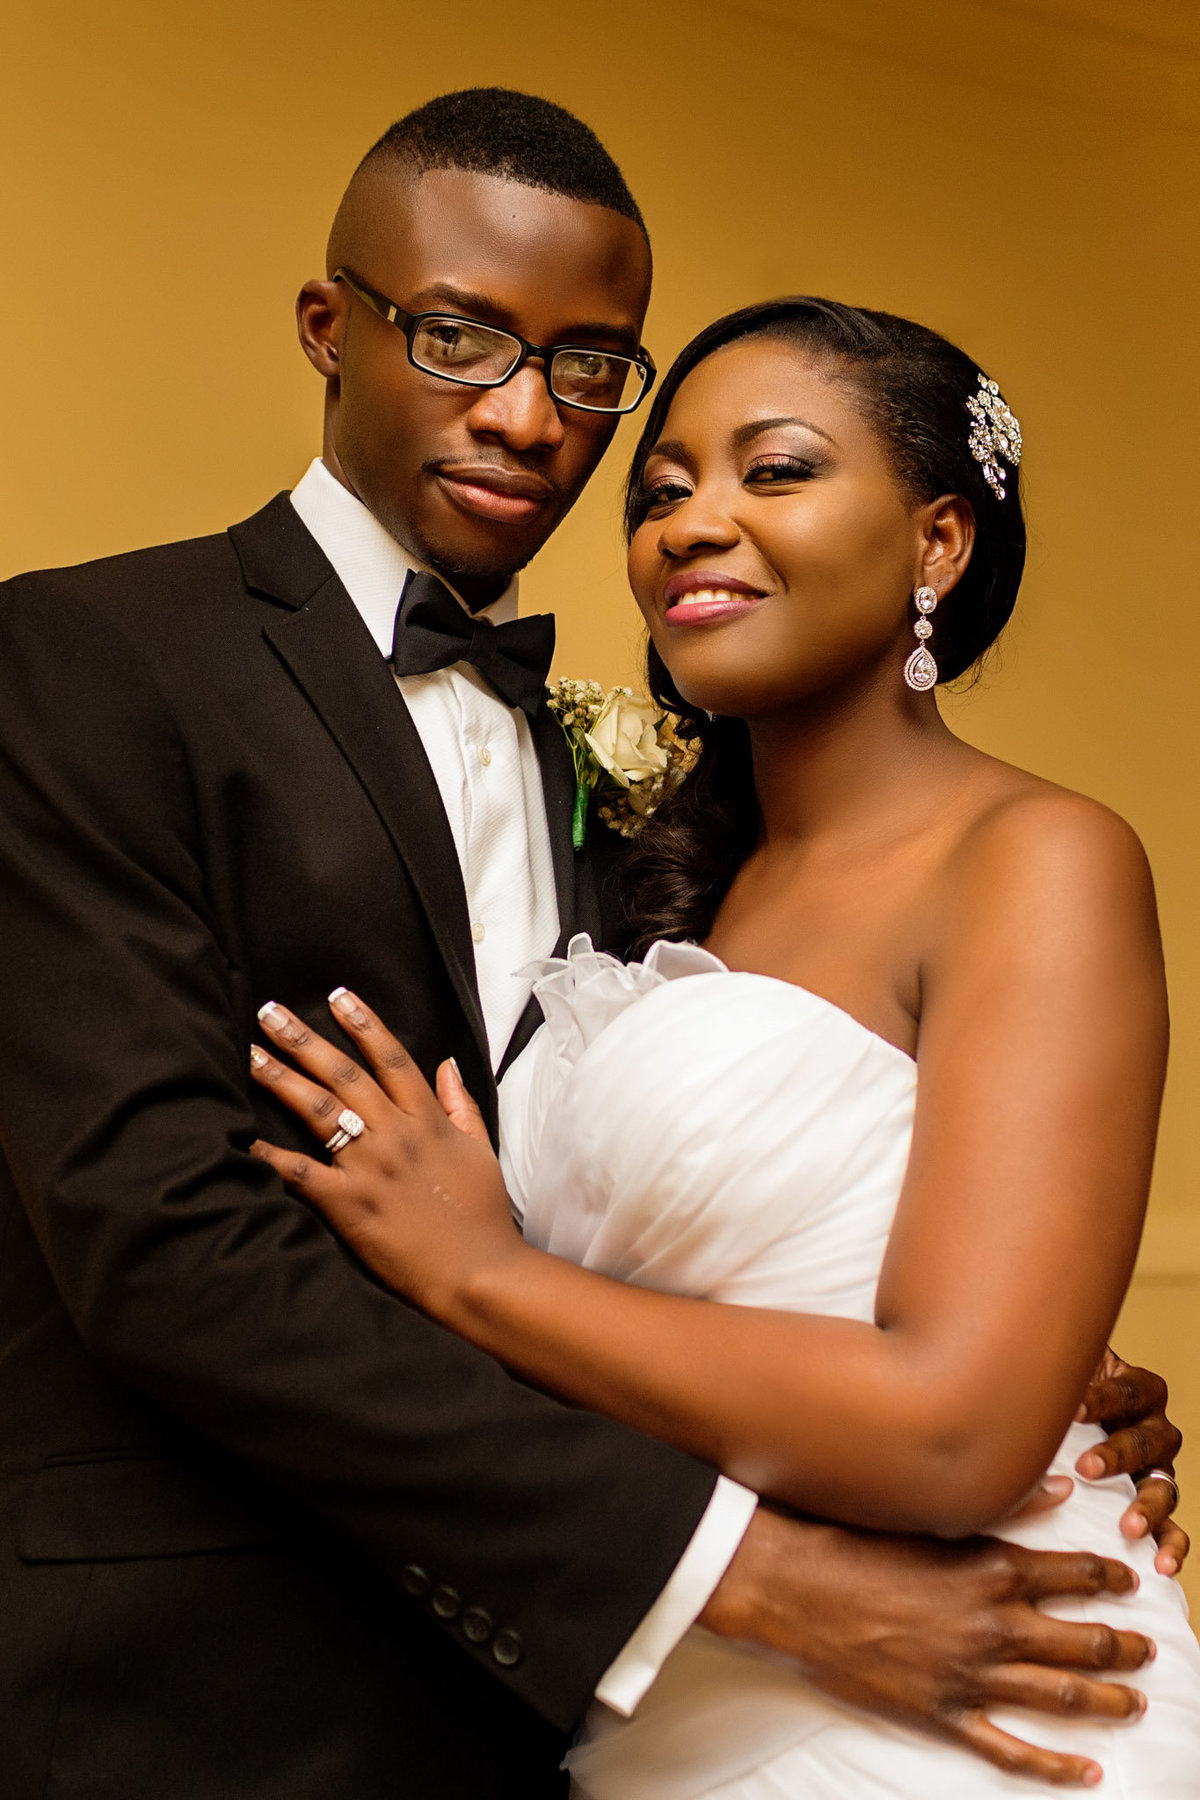 For-FacebookAndWebsites-Yewande-Lolu-Wedding-Winston-Salem-Clemmons-NC-Yoruba-Nigerian-Kumolu-Studios-909